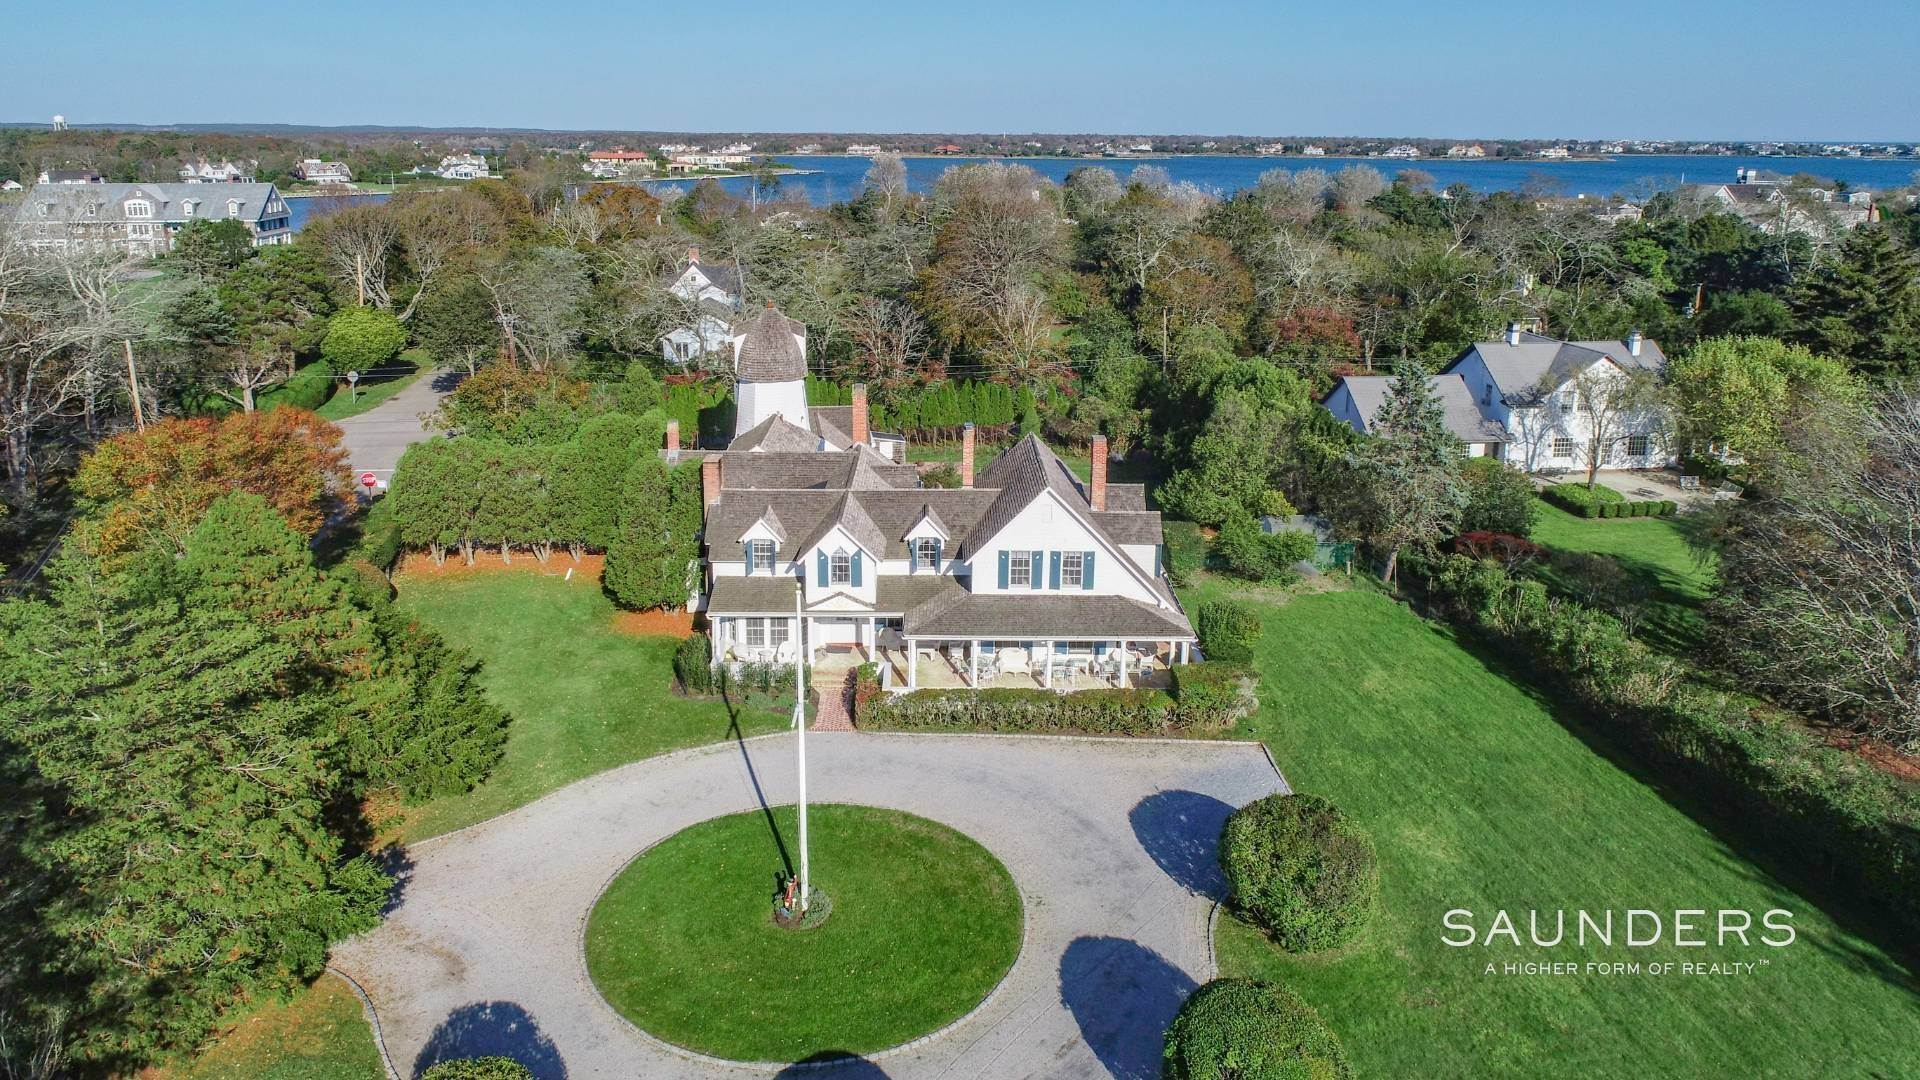 3. Single Family Homes at Westhampton Village Grand Dame With Pool, Tennis & Pool House 15 Sunswyck Lane, Westhampton Beach Village, Southampton Town, NY 11978